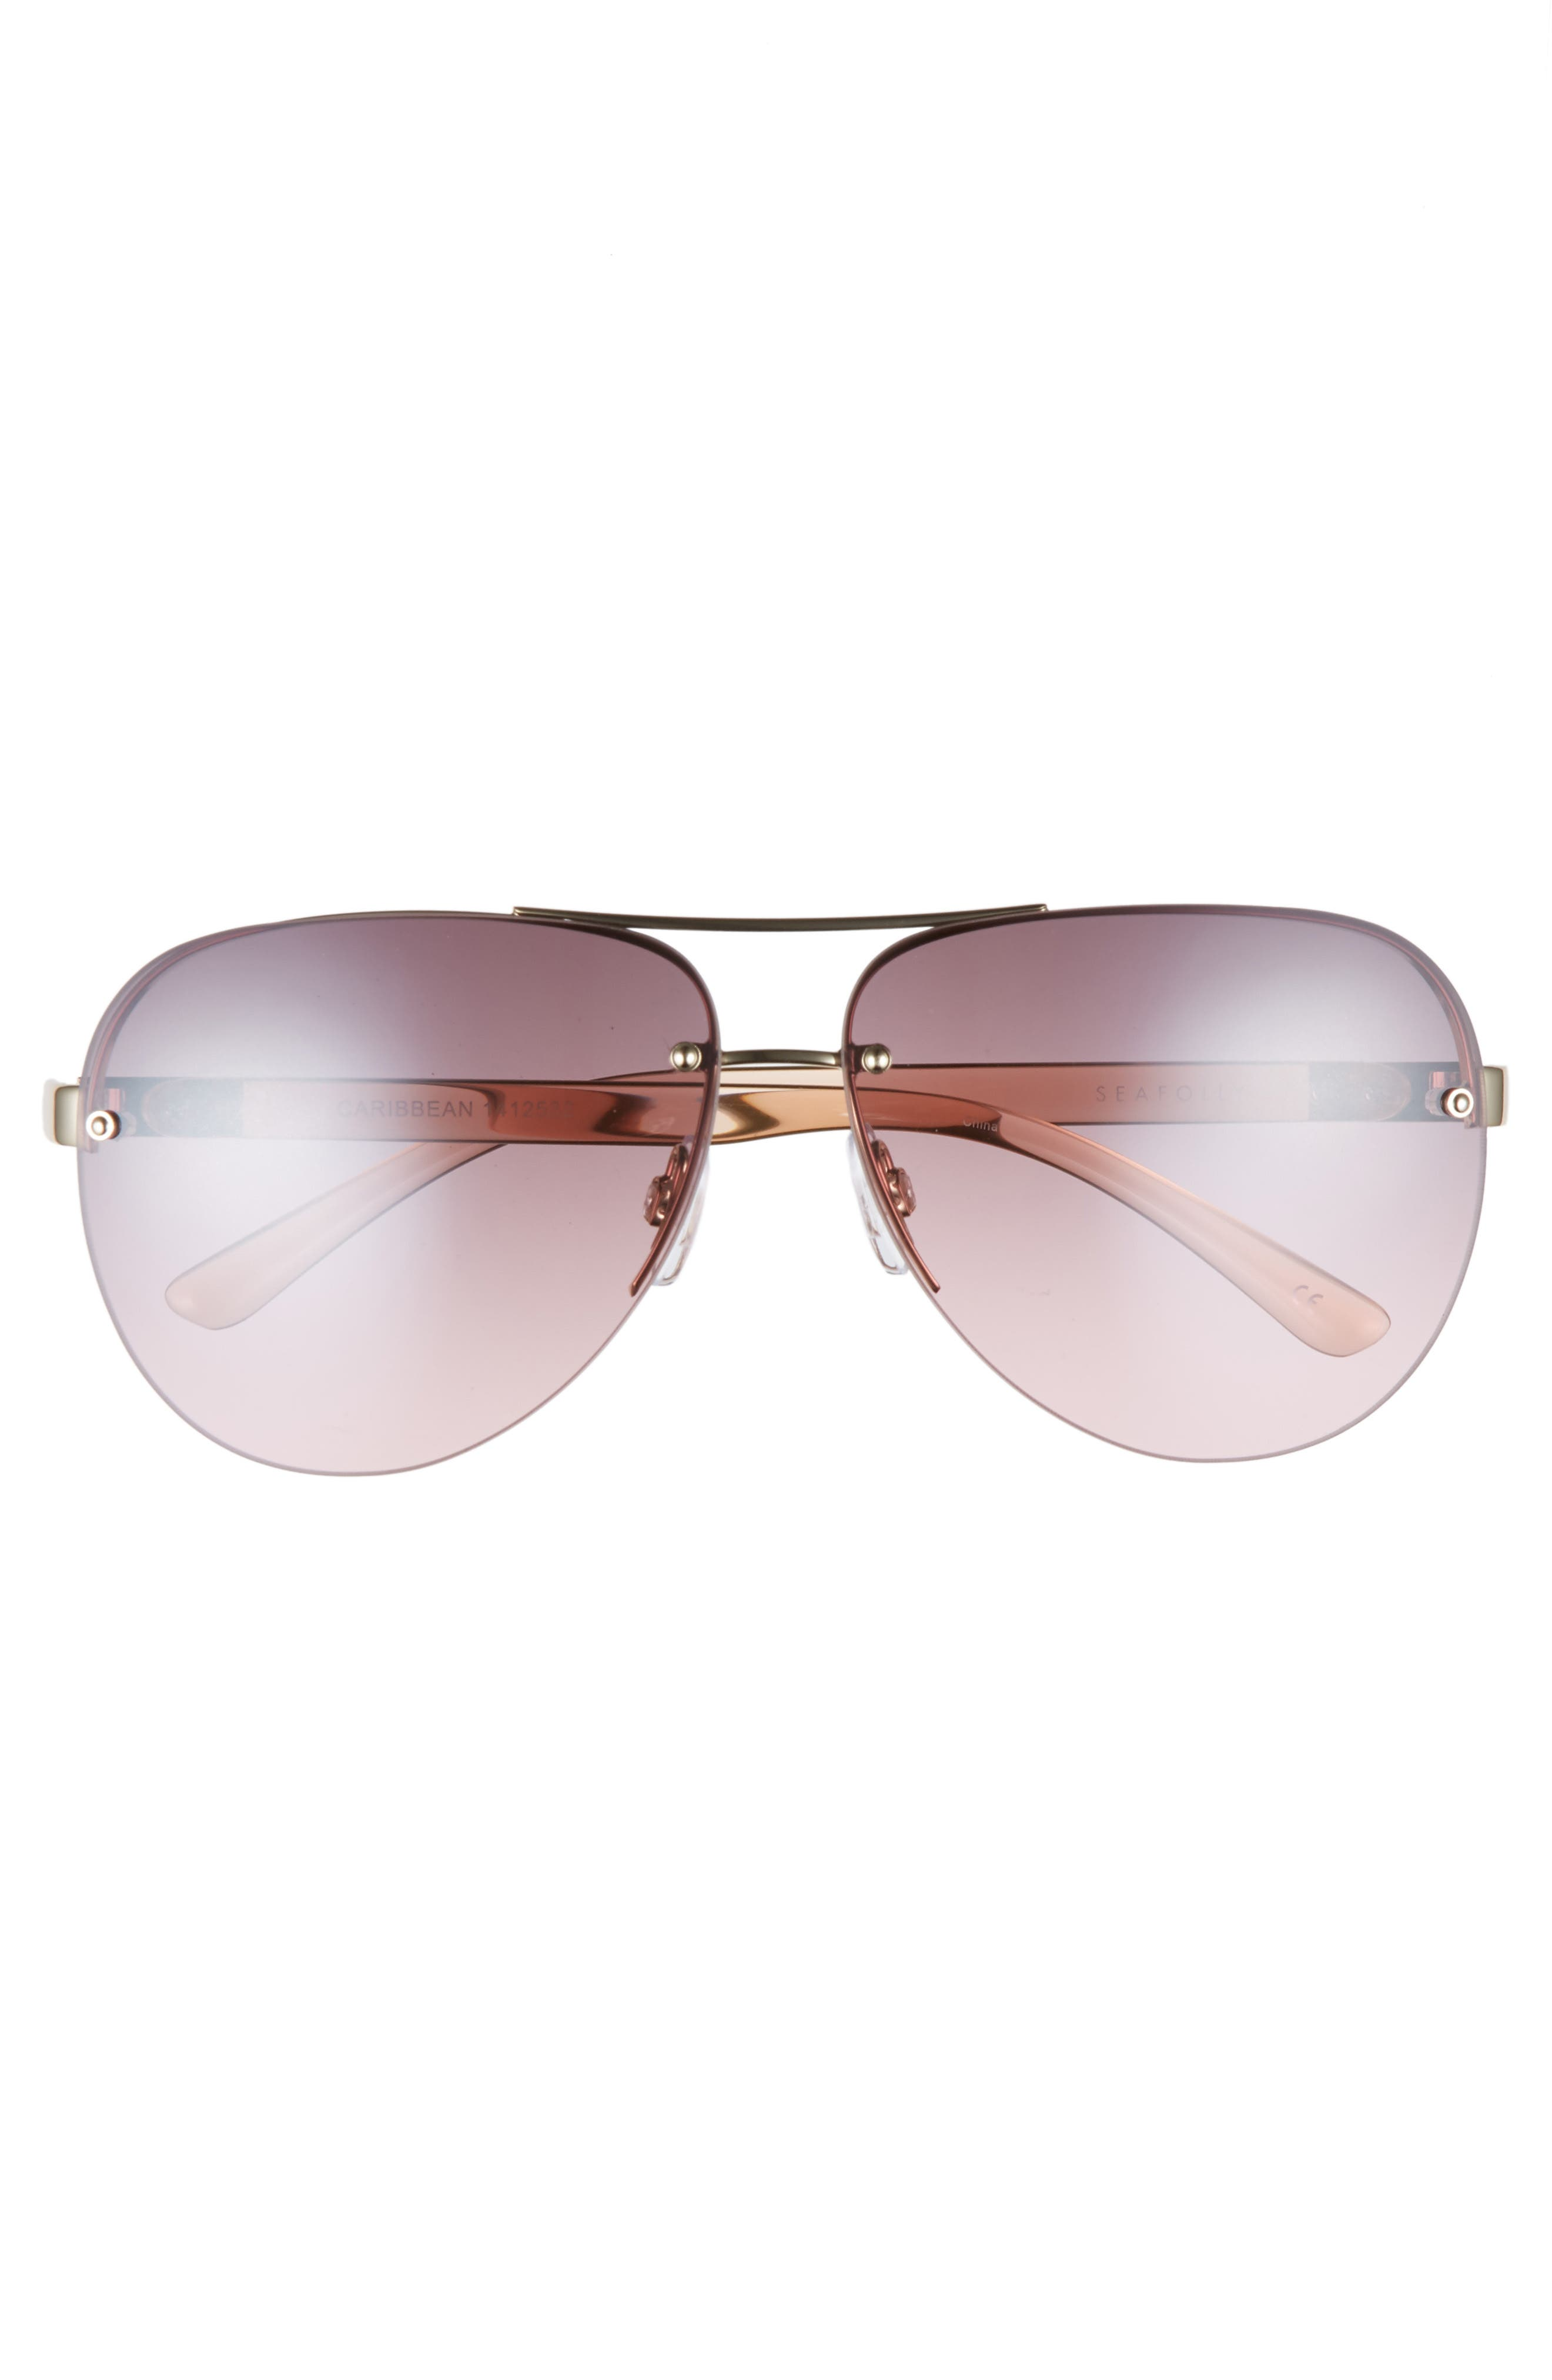 Caribbean 62mm Rimless Aviator Sunglasses,                             Alternate thumbnail 3, color,                             710